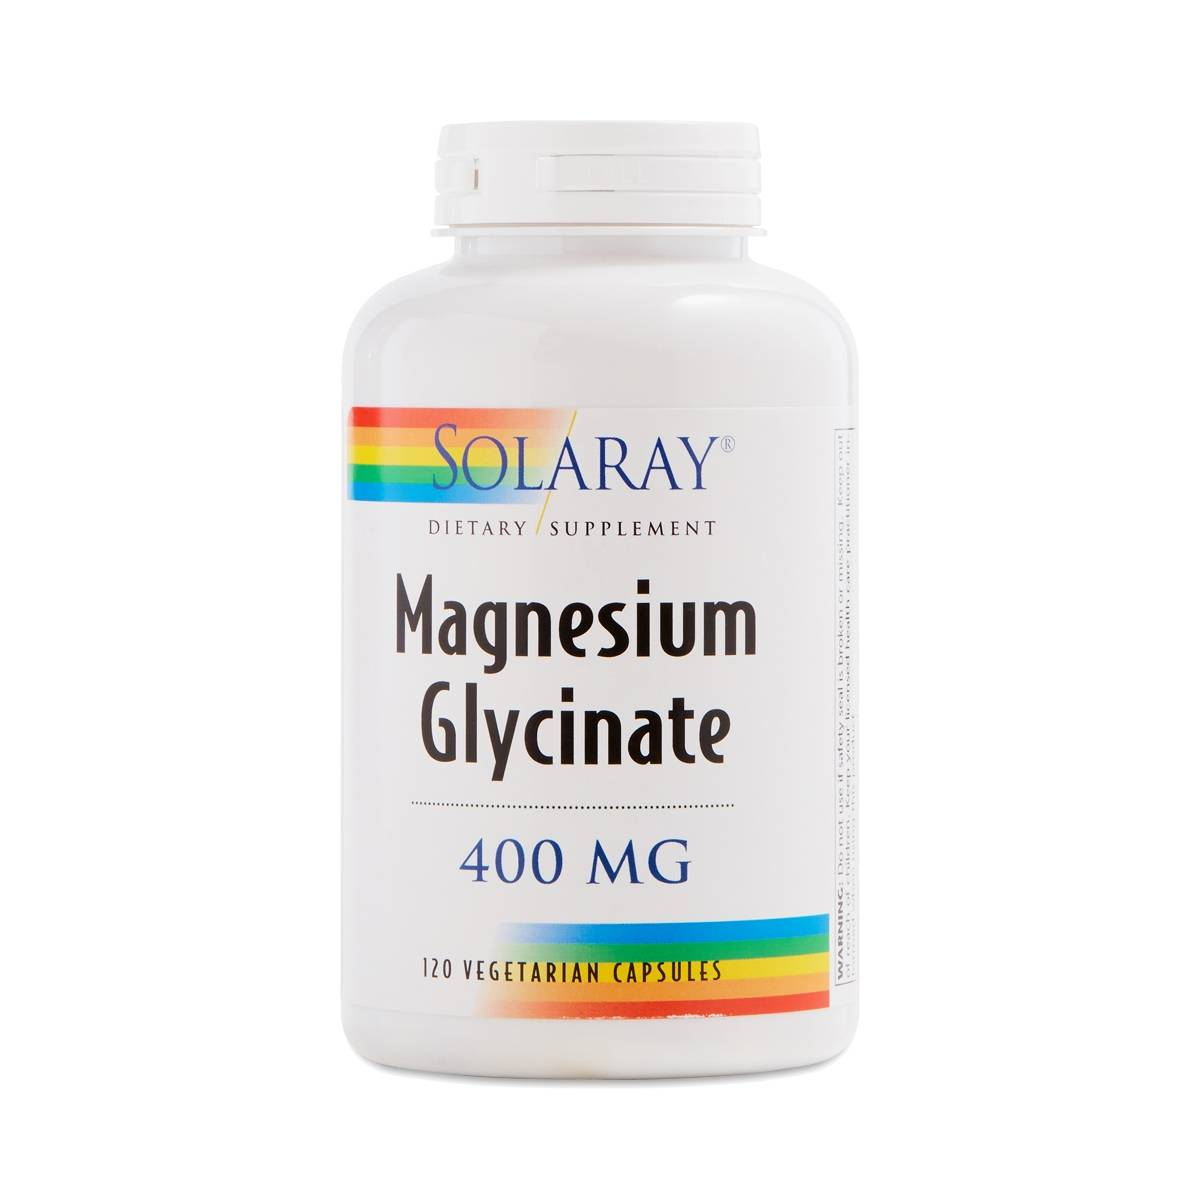 Magnesium Glycinate By Solaray Thrive Market